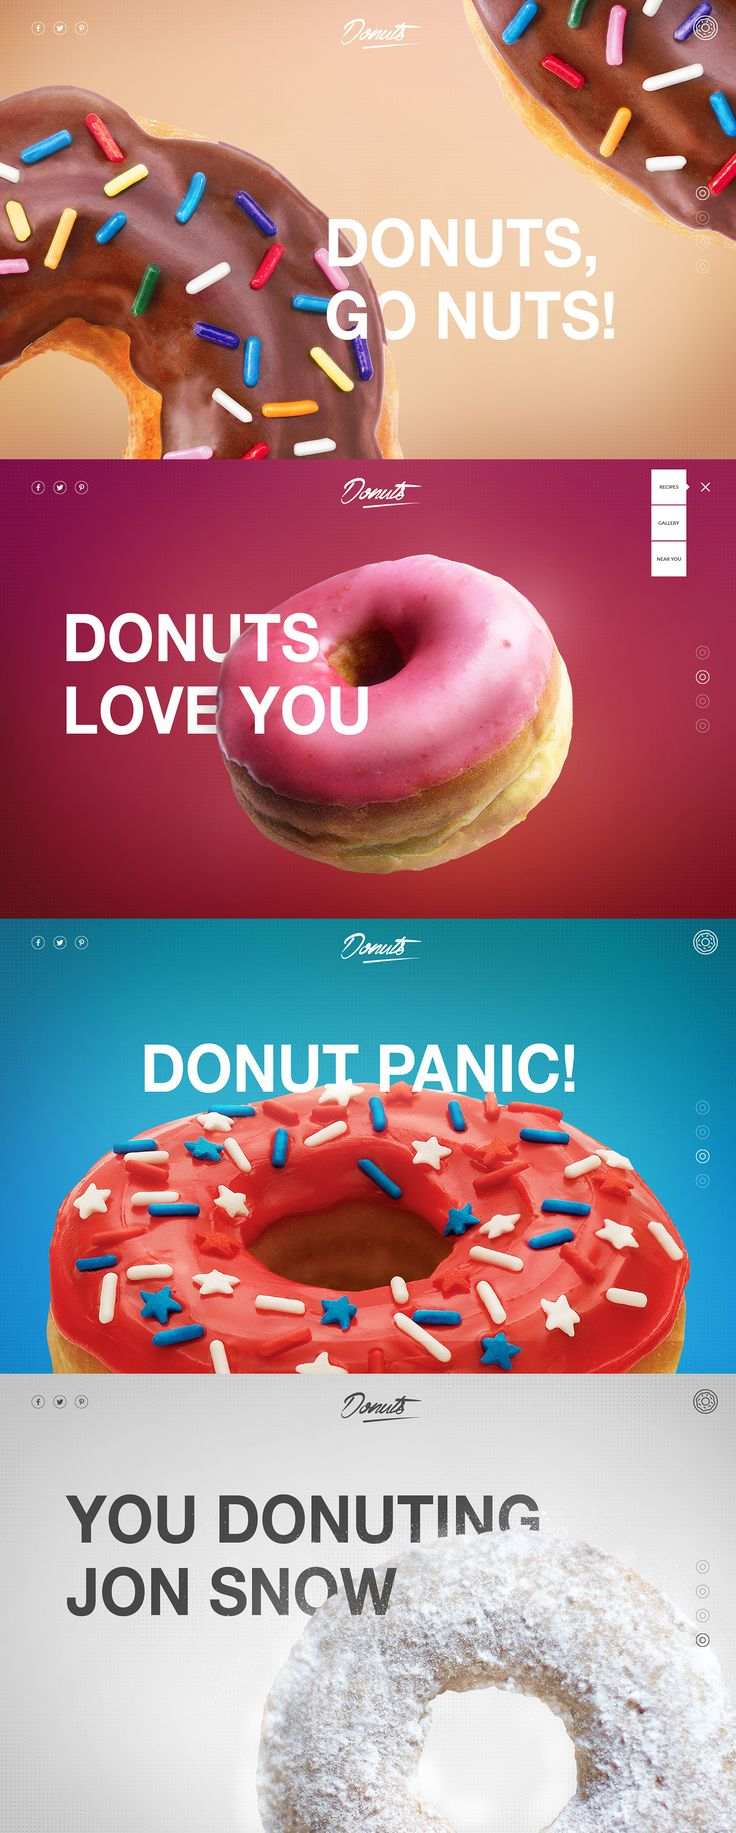 Donuts, by Florian Pollet